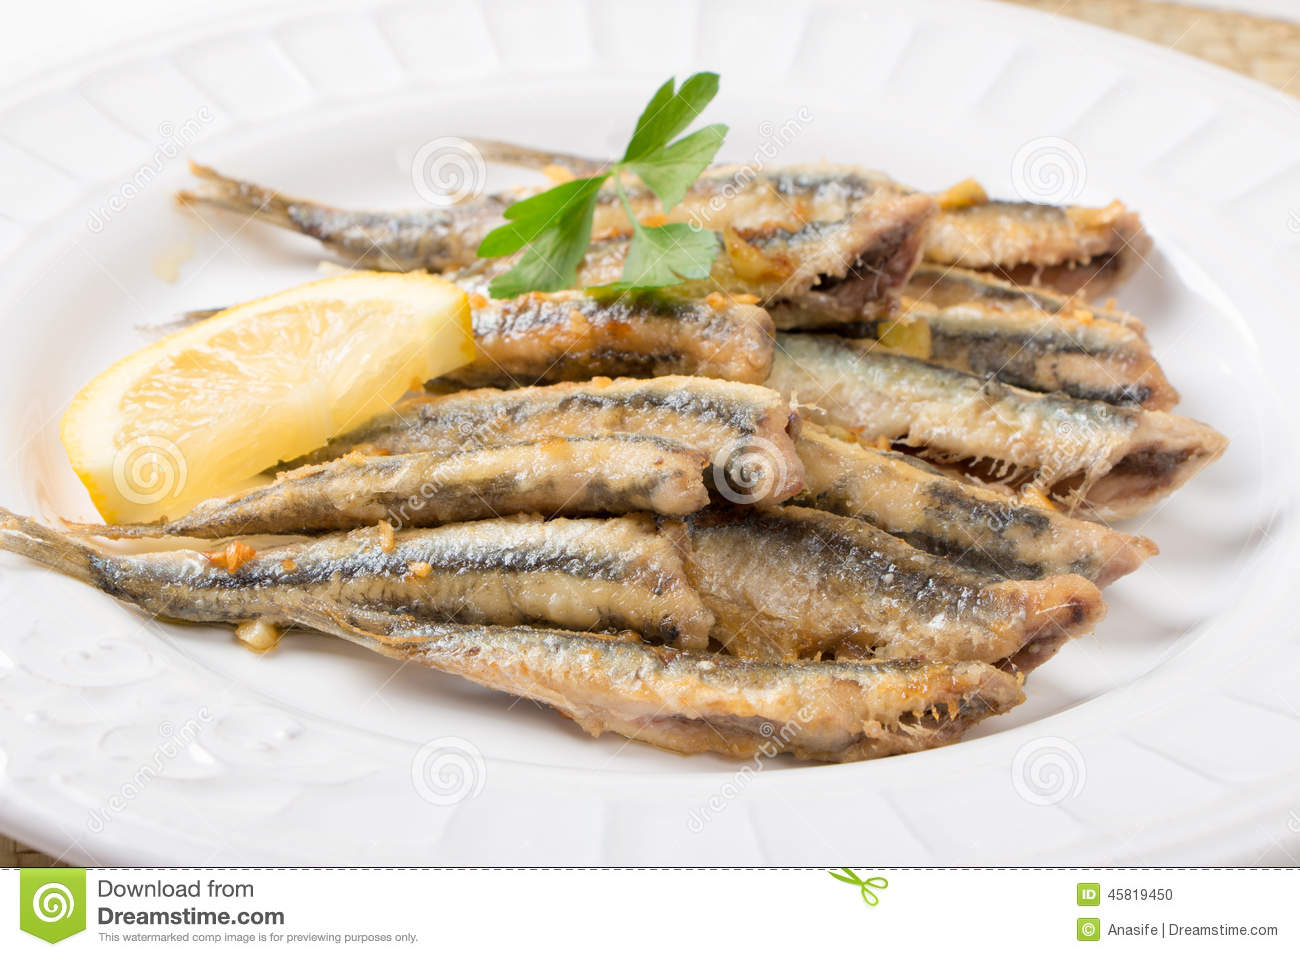 Fried anchovies with parsley and lemon in a dish.